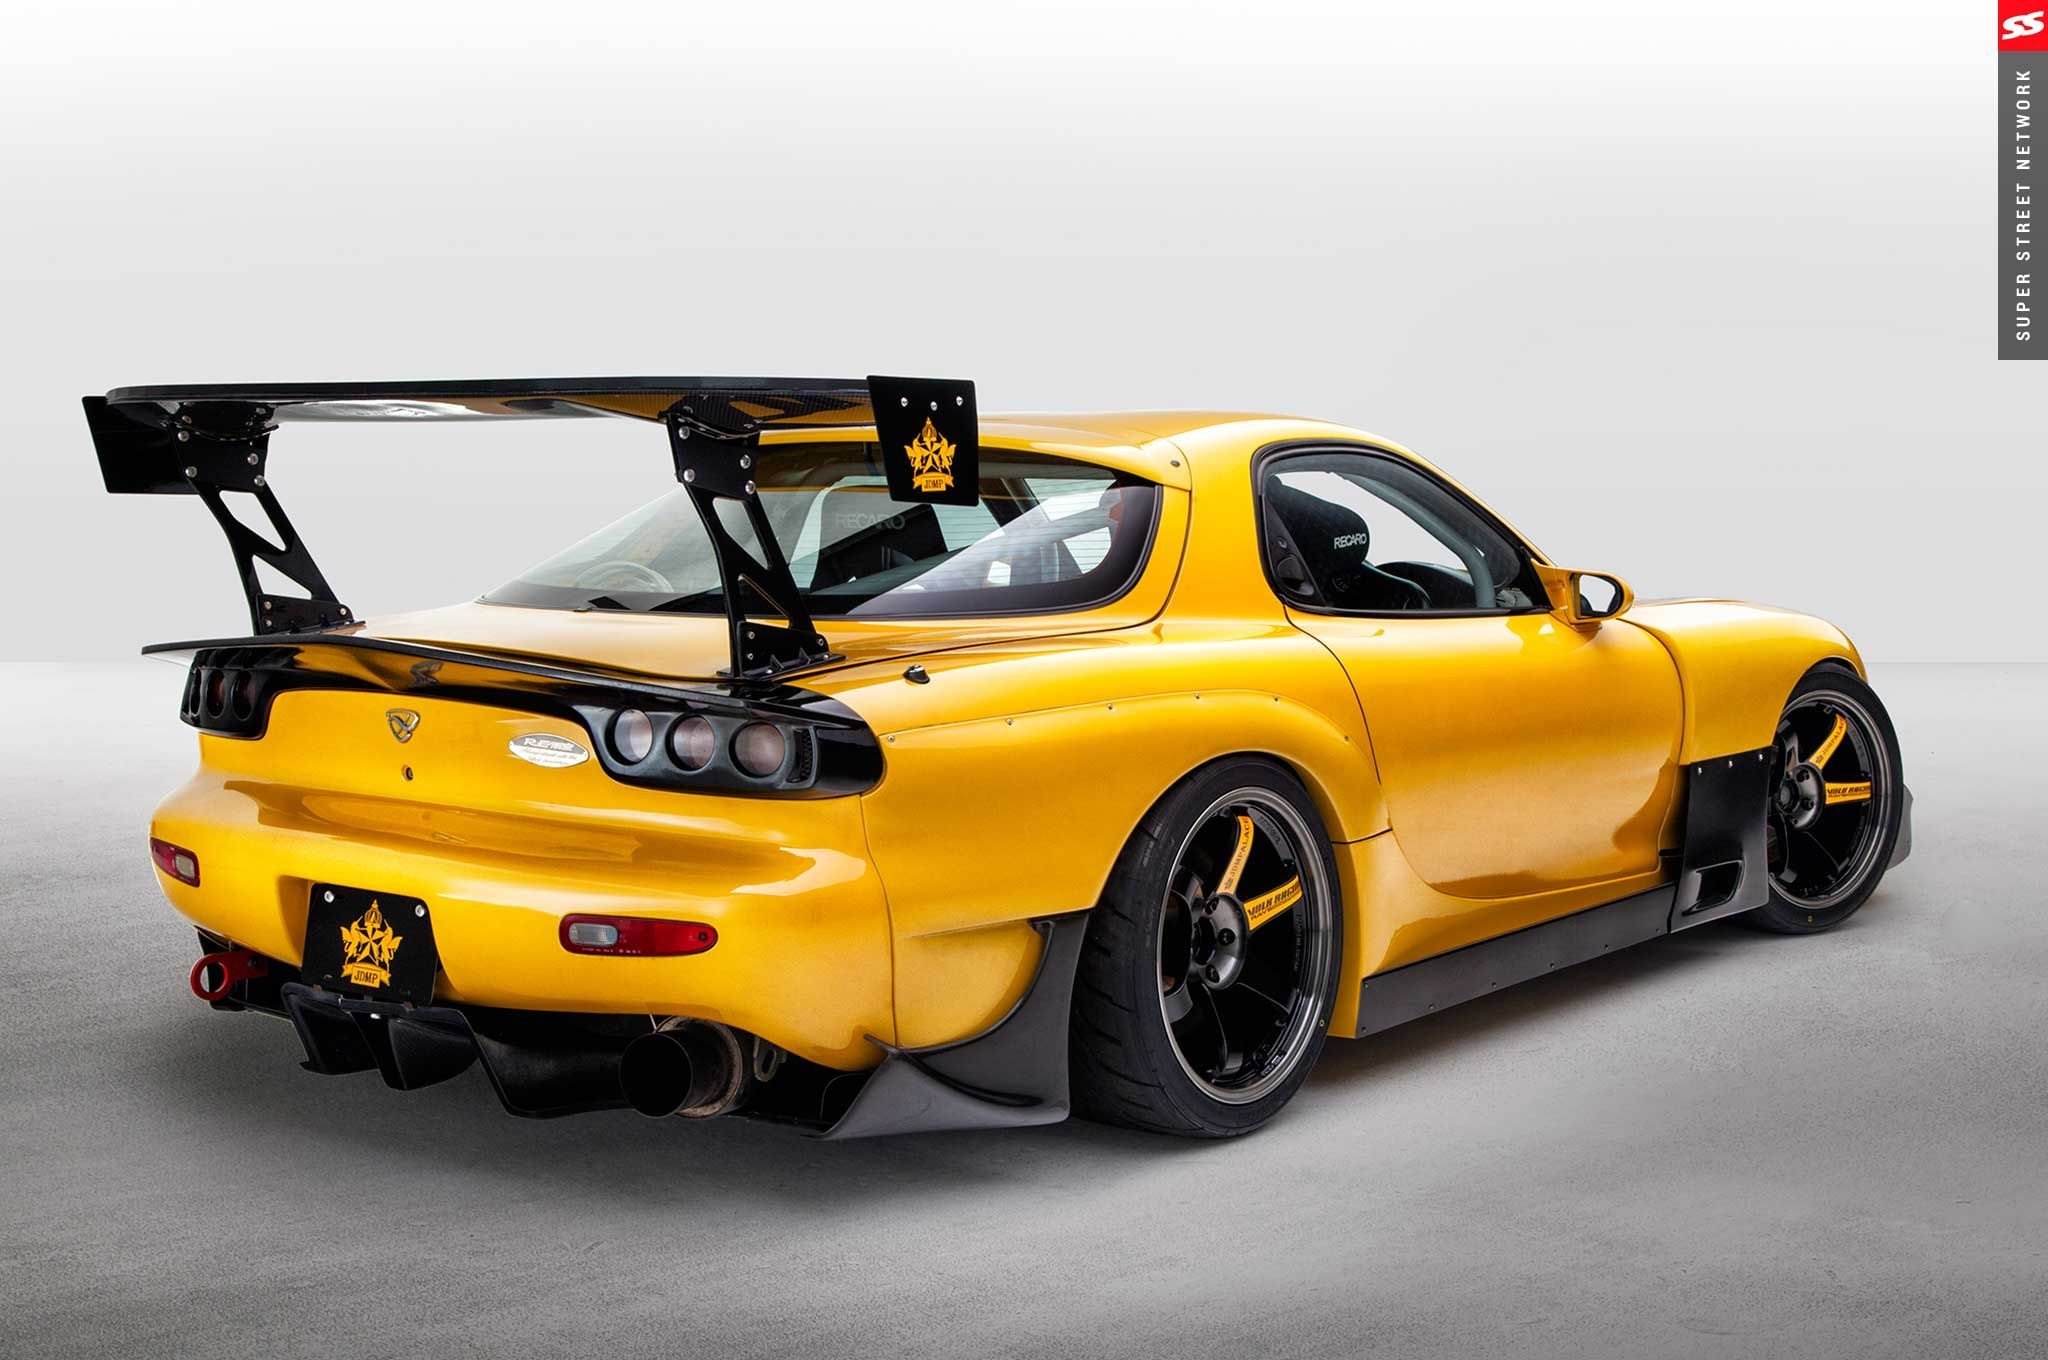 1998 mazda rx7 coupe yellow aero kit cars wallpaper 2048x1360 888689 wallpaperup. Black Bedroom Furniture Sets. Home Design Ideas